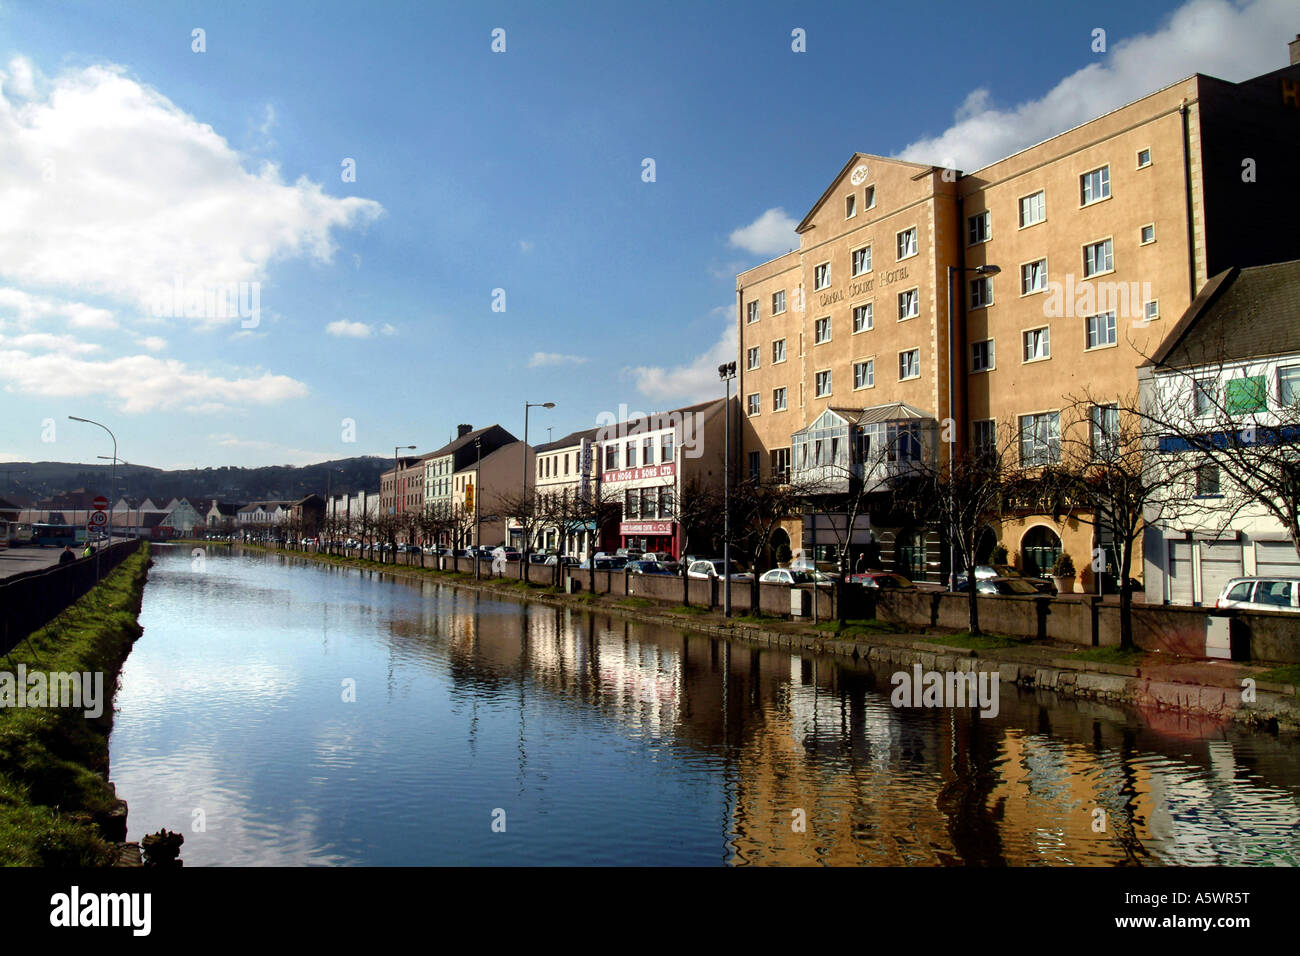 Newry, Co. Armagh, Northern Ireland - Stock Image